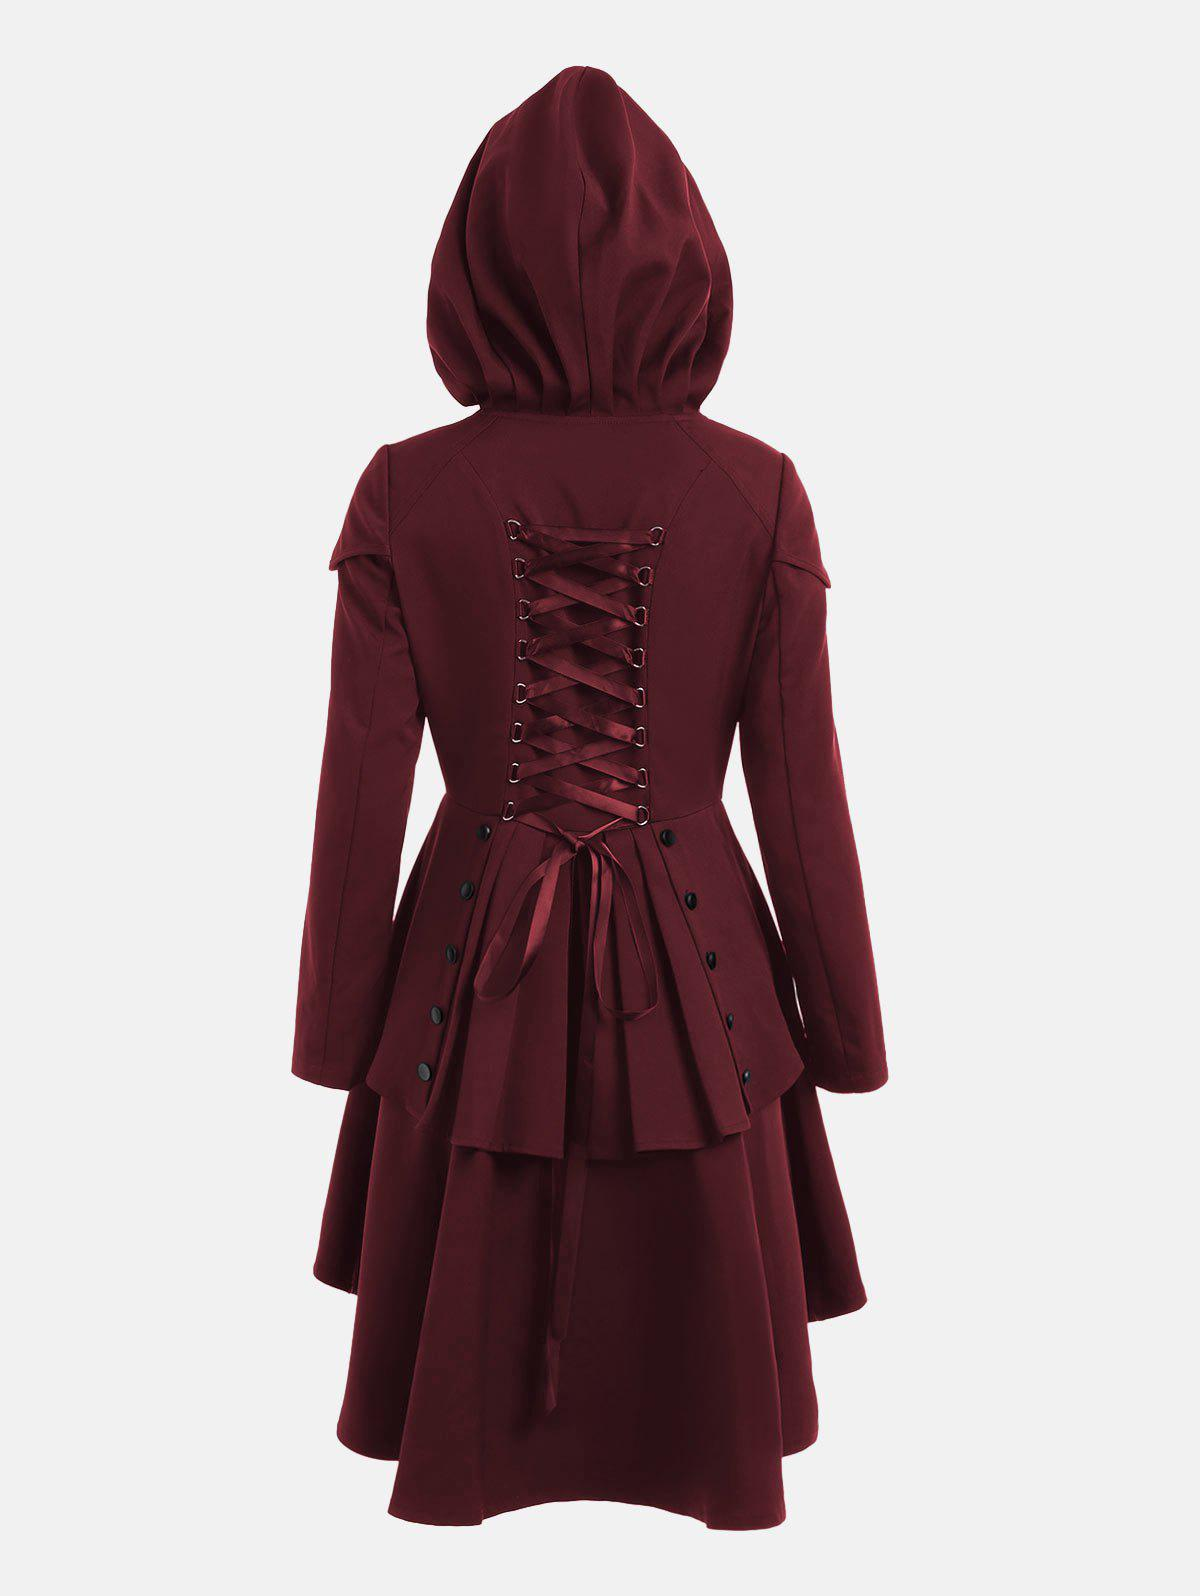 Lace Up Layered High Low Hooded CoatWOMEN<br><br>Size: 2XL; Color: WINE RED; Clothes Type: Others; Material: Polyester; Type: High Waist; Shirt Length: Long; Sleeve Length: Full; Collar: Hooded; Closure Type: Single Breasted; Pattern Type: Solid; Embellishment: Criss-Cross; Style: Gothic; Season: Fall,Spring; With Belt: No; Weight: 0.6600kg; Package Contents: 1 x Coat;